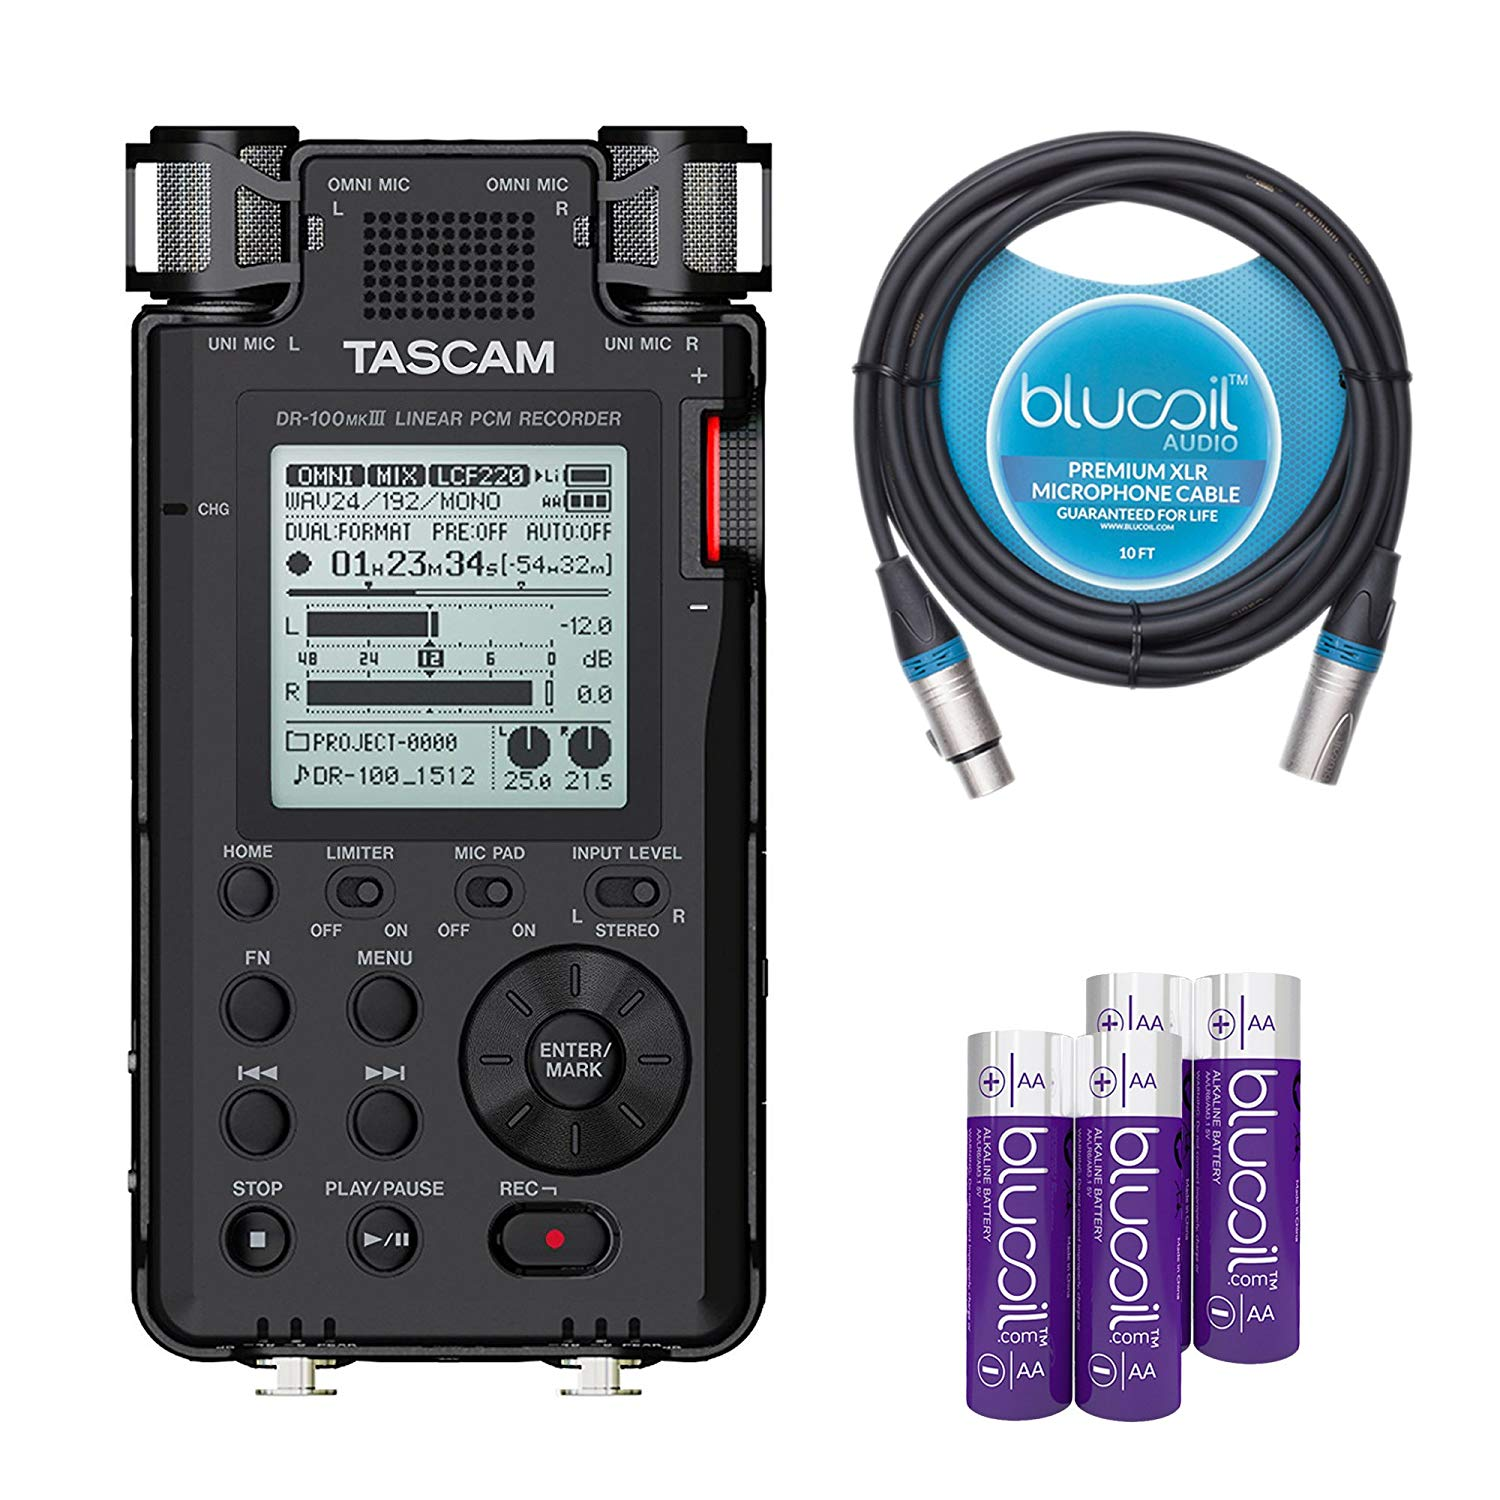 TASCAM DR-100mkIII Portable Recorder with Linear PCM Compatibility -INCLUDES- Blucoil Audio 10' Balanced XLR Cable AND 2-Pack of AA Batteries